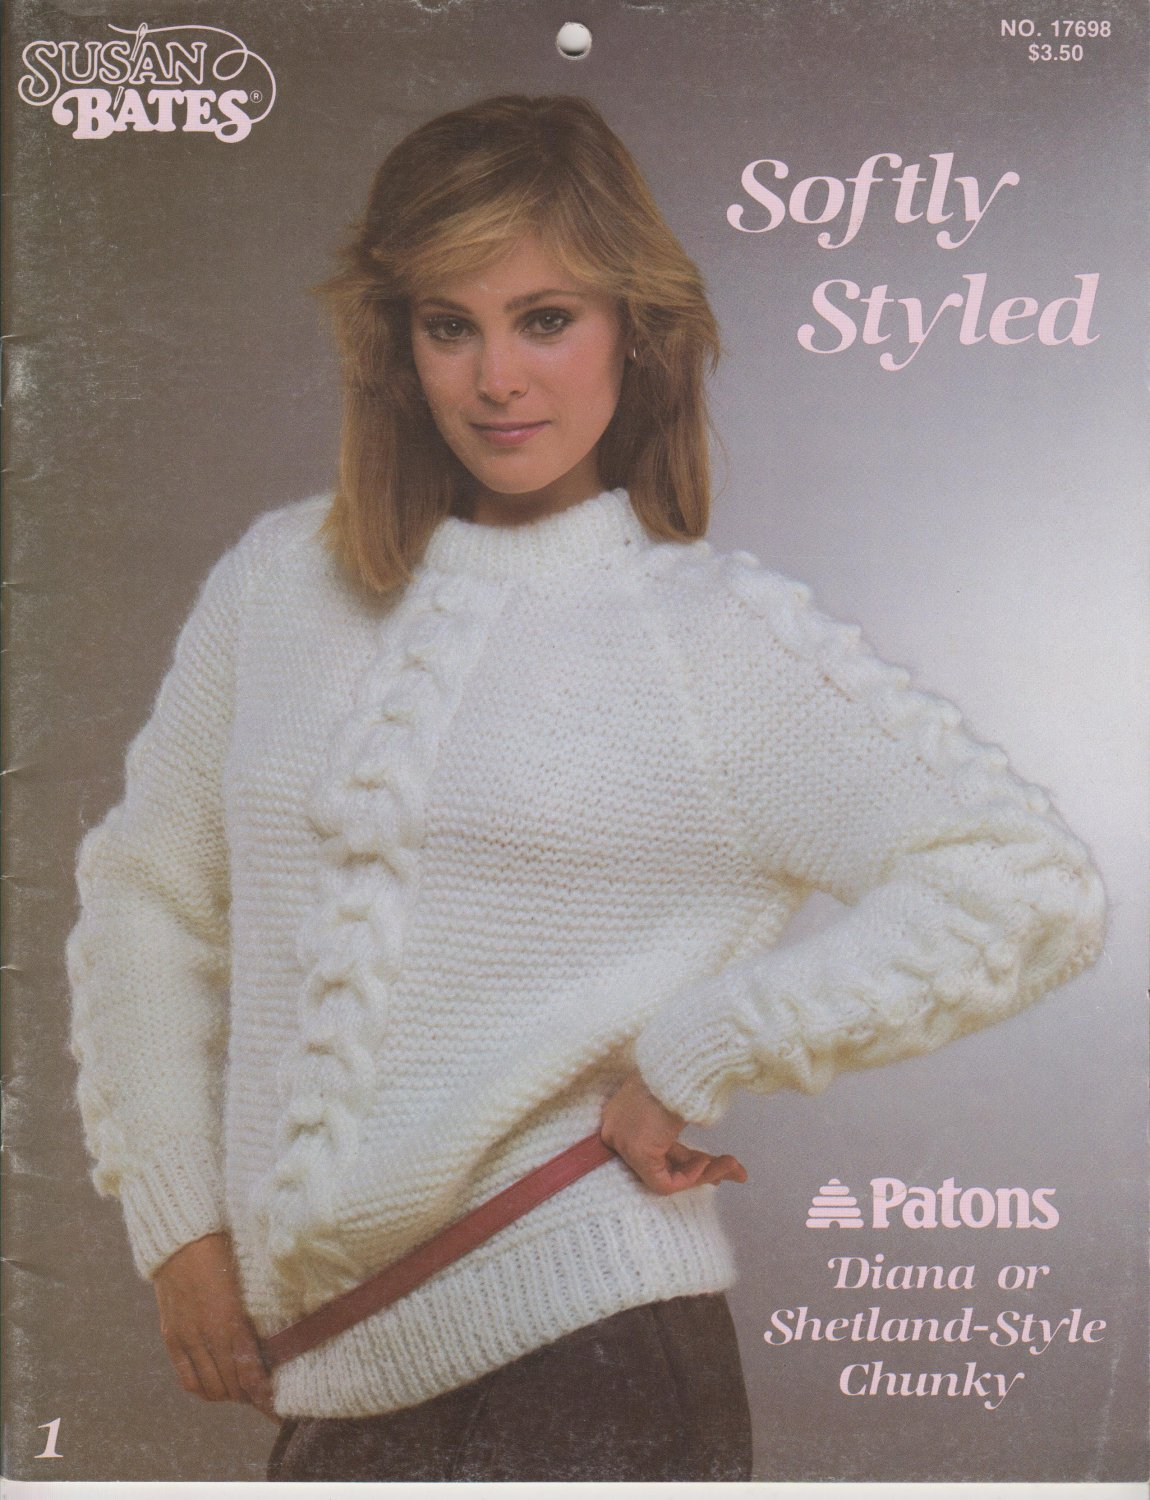 Patons Susan Bates 1984 Knitting Pattern Booklet Softly Styled #17698